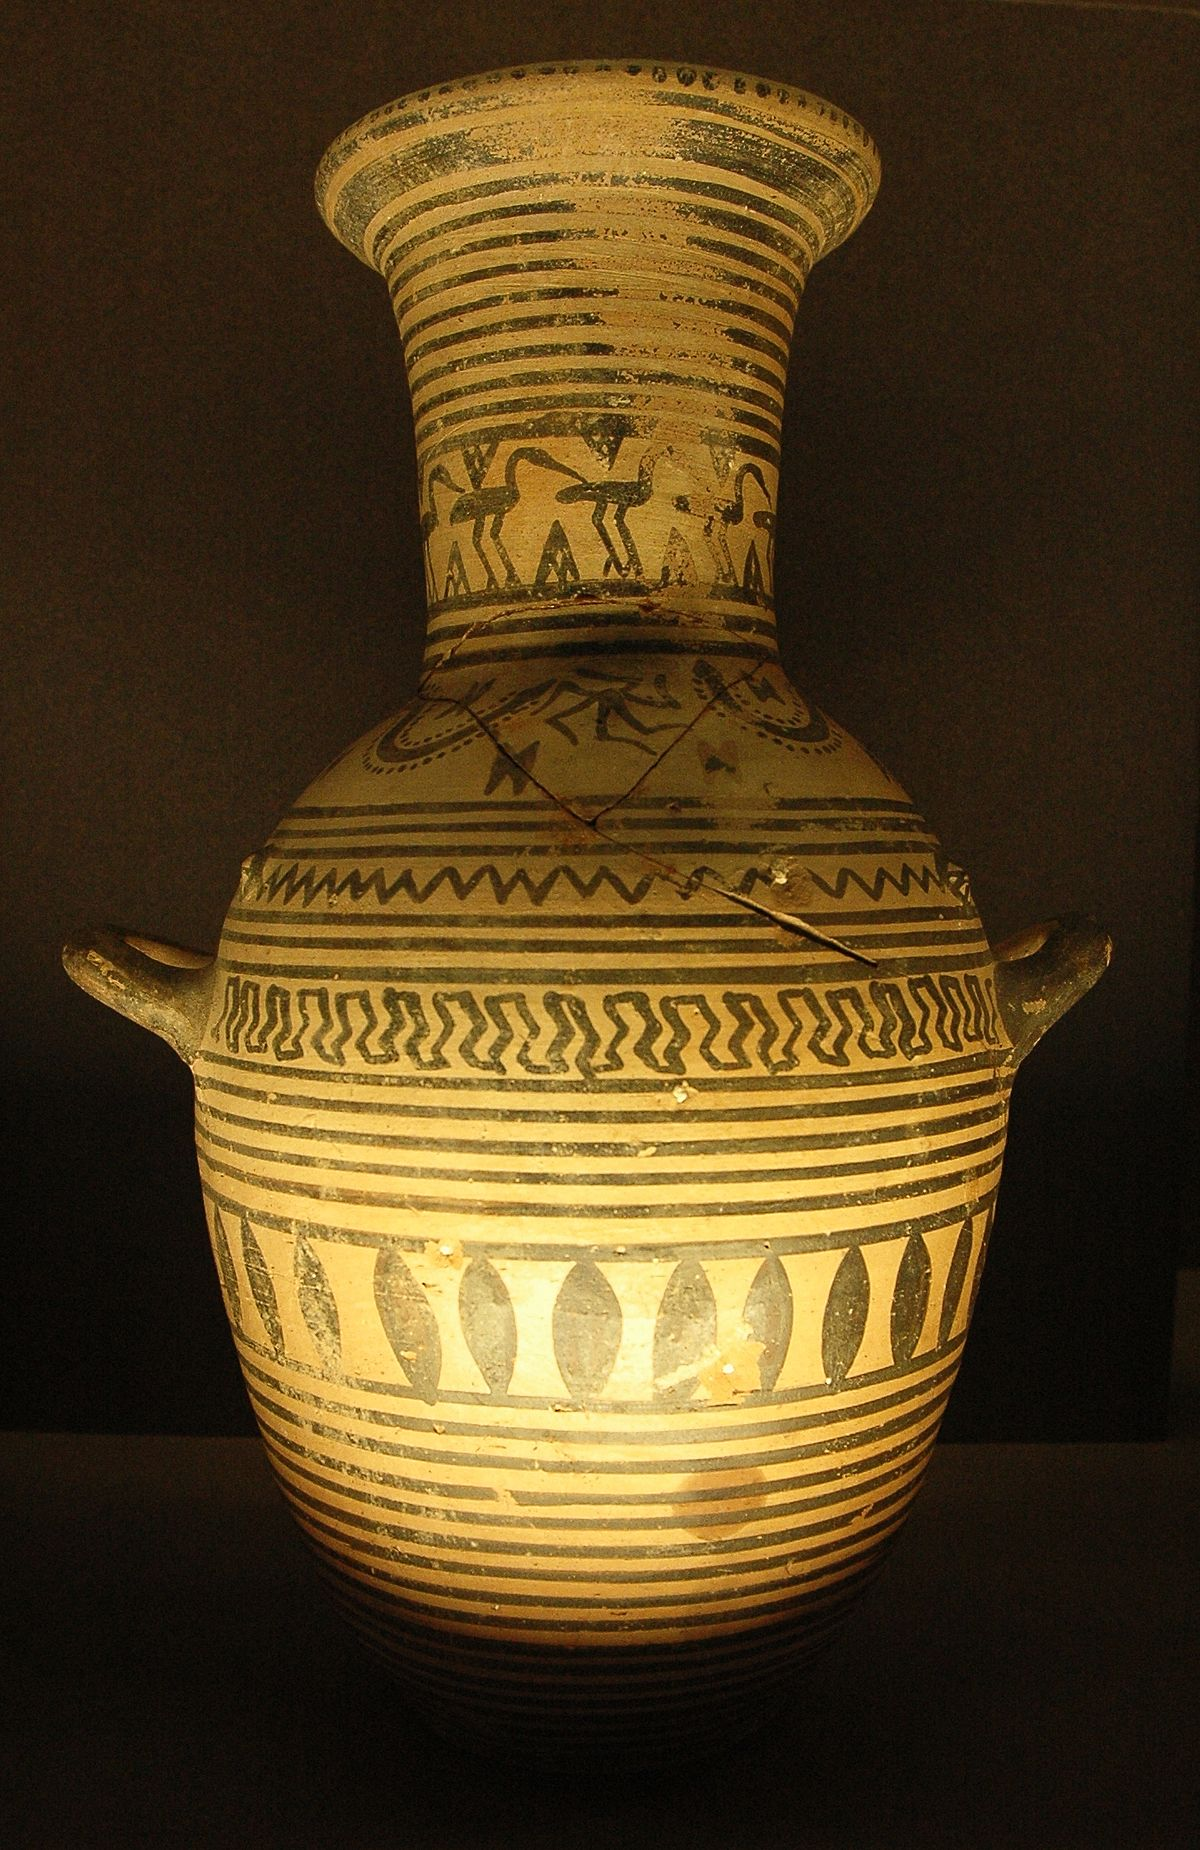 Boeotian vase painting - Wikipedia